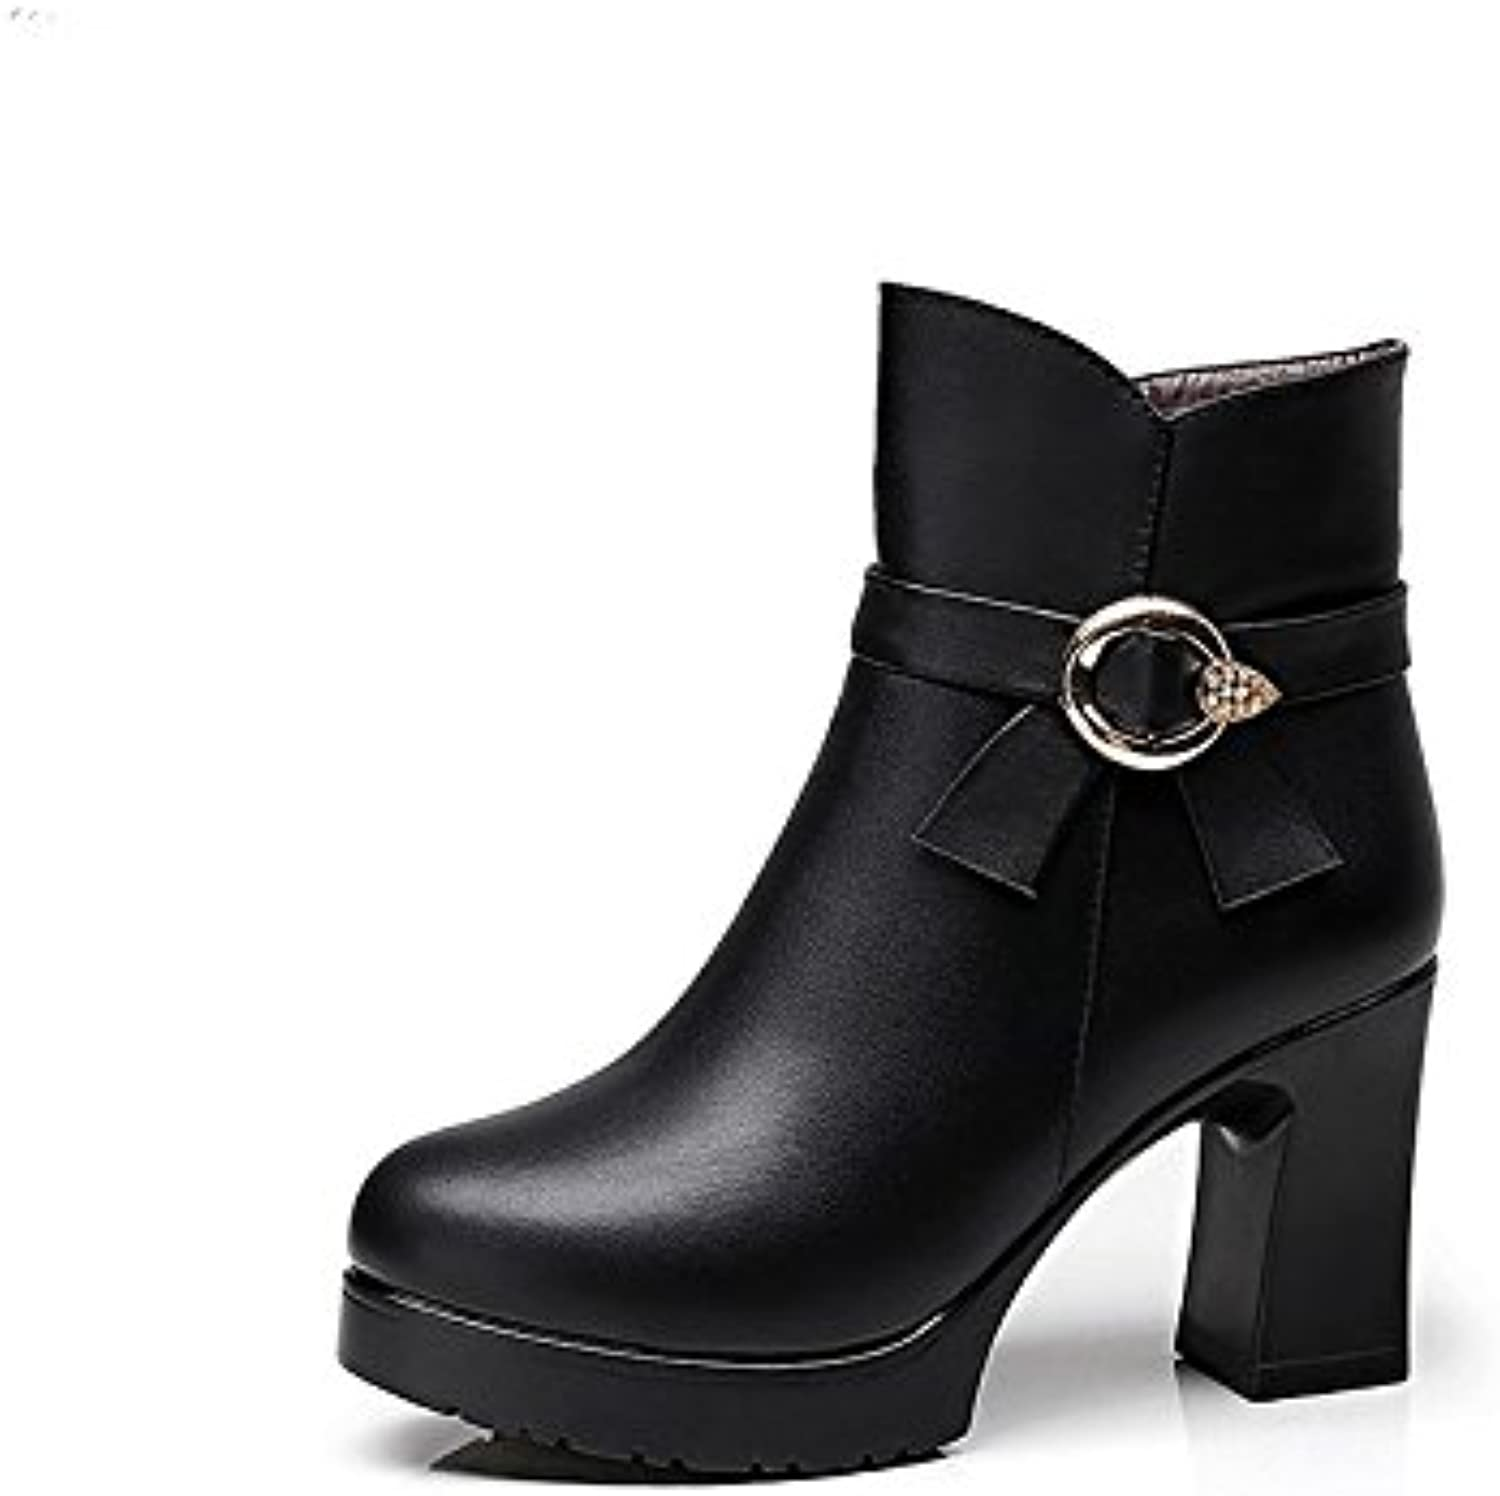 HSXZ Women's shoes Synthetic Microfiber PU Winter Fall Bootie Boots Chunky Heel Round Toe Booties Ankle Boots Sparkling Glitter for Dress